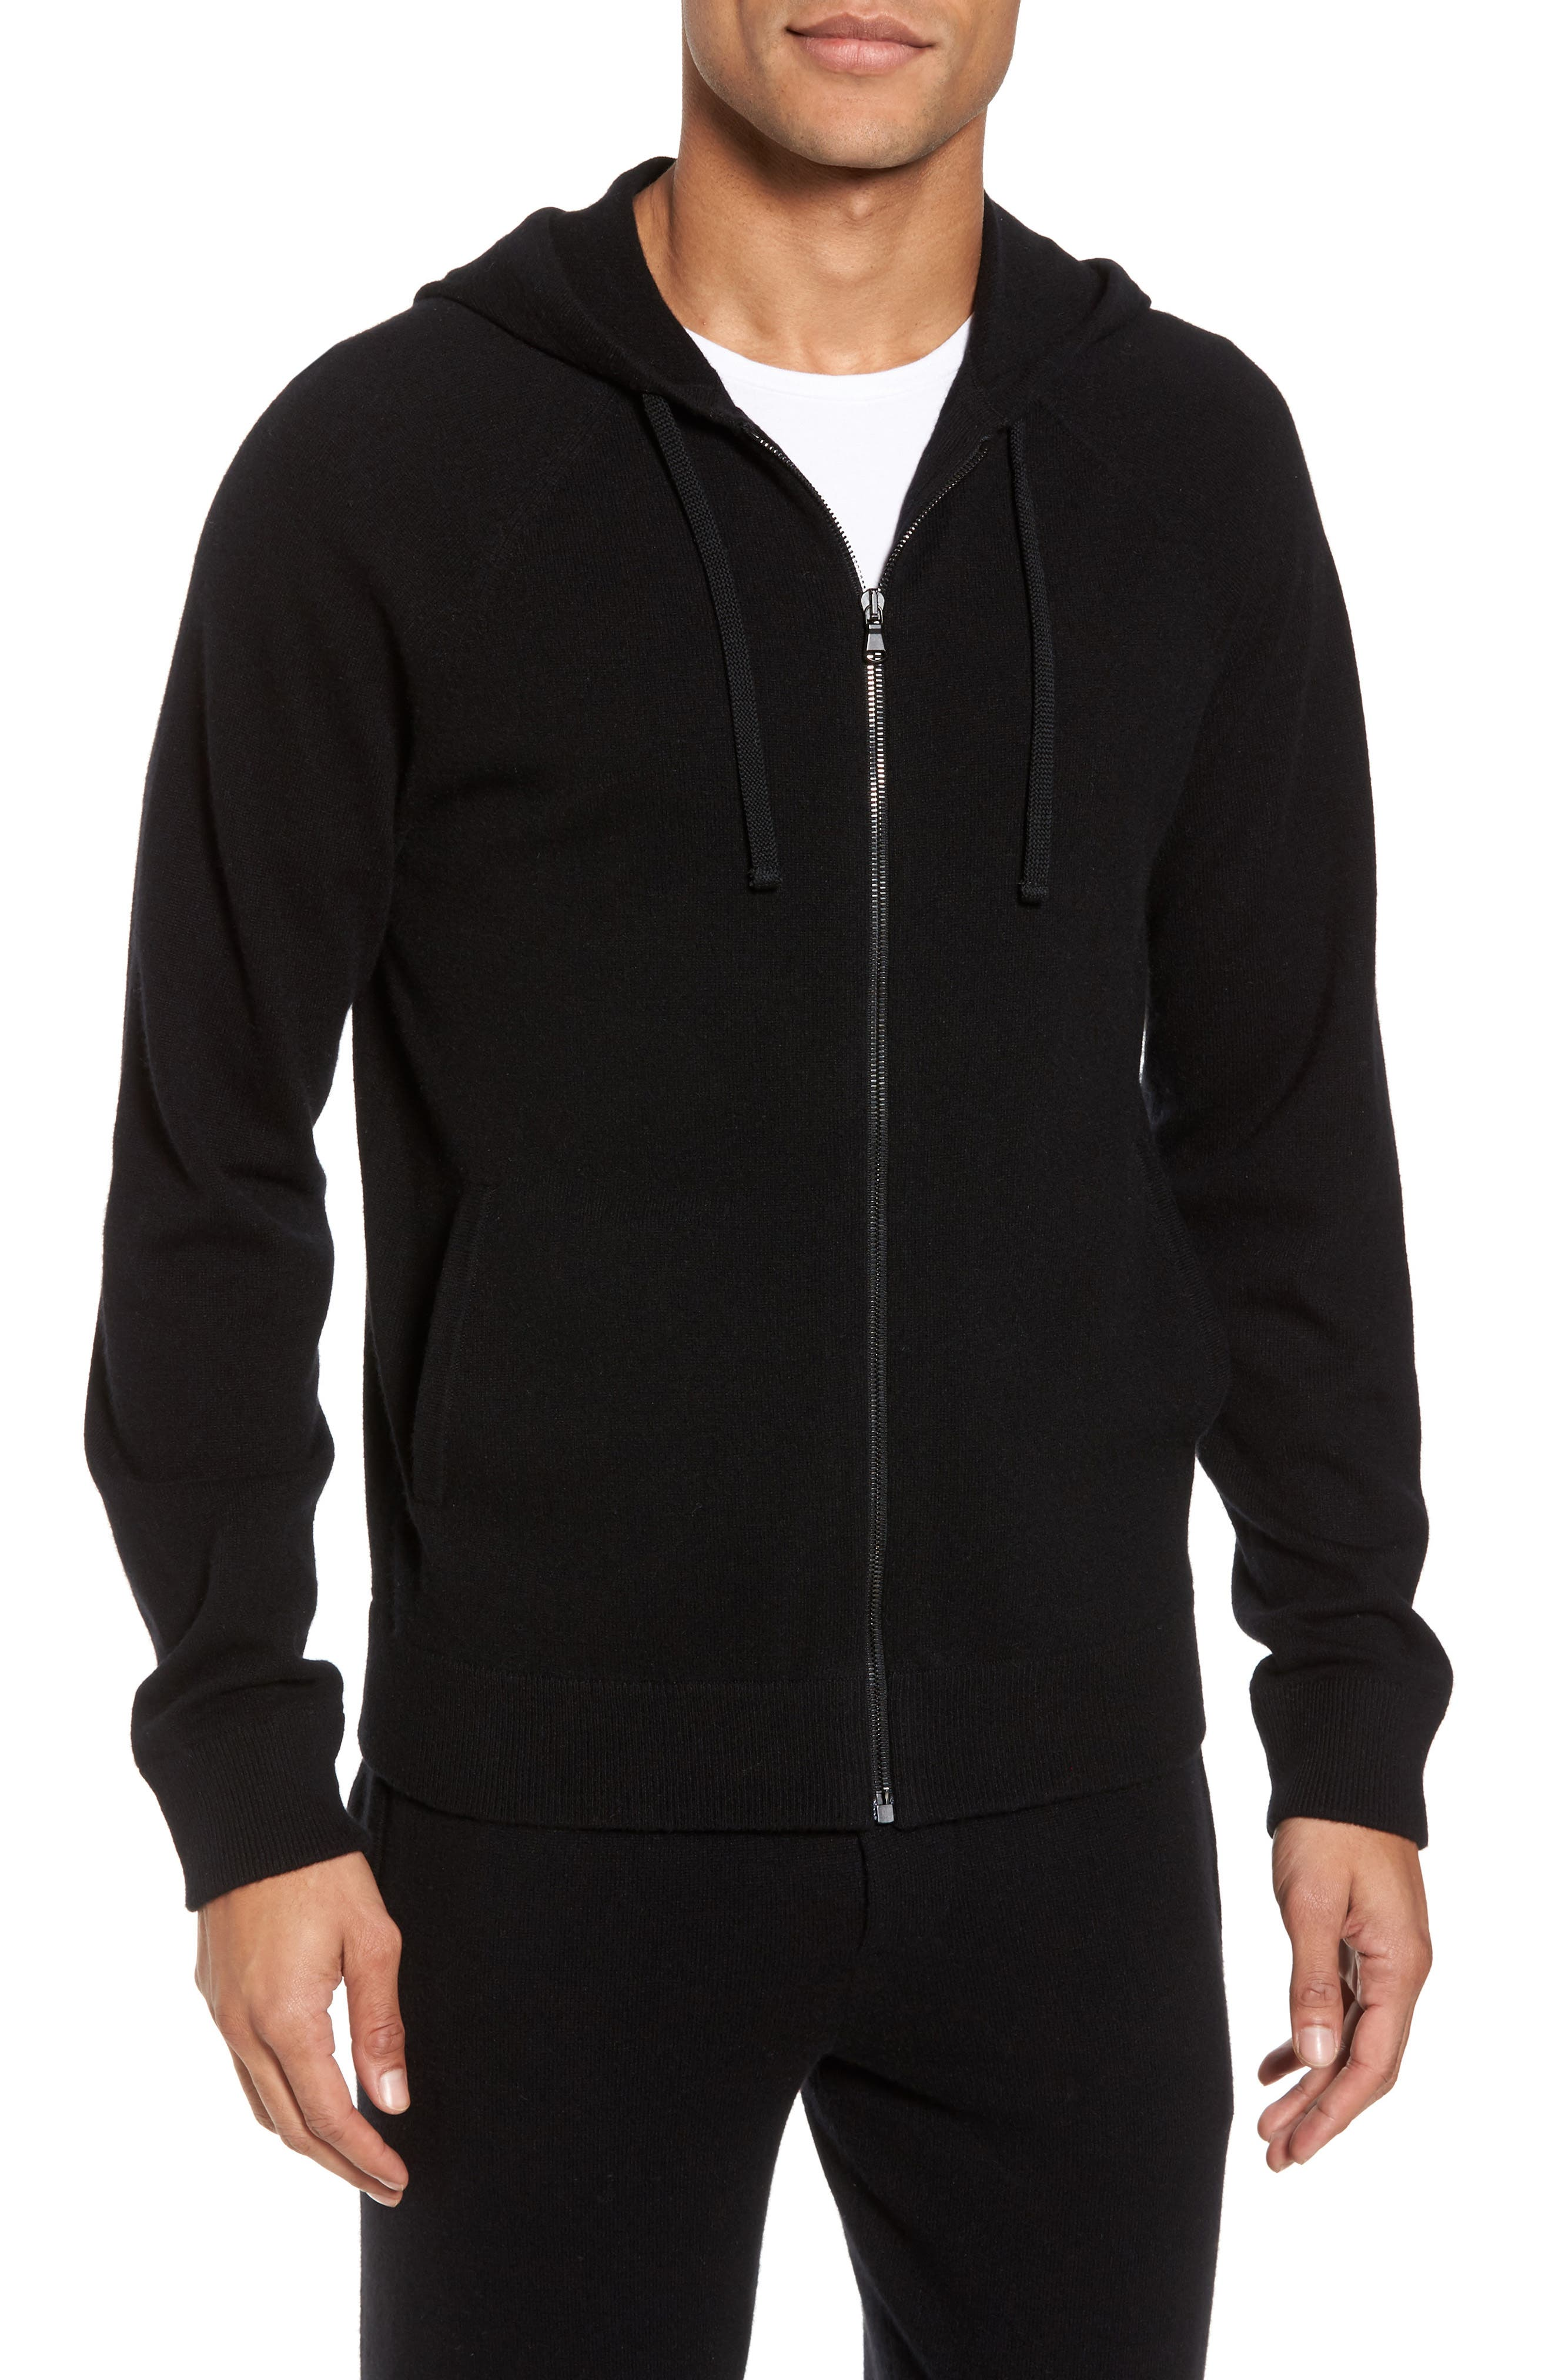 James Perse Classic Fit Cashmere Hooded Track Jacket